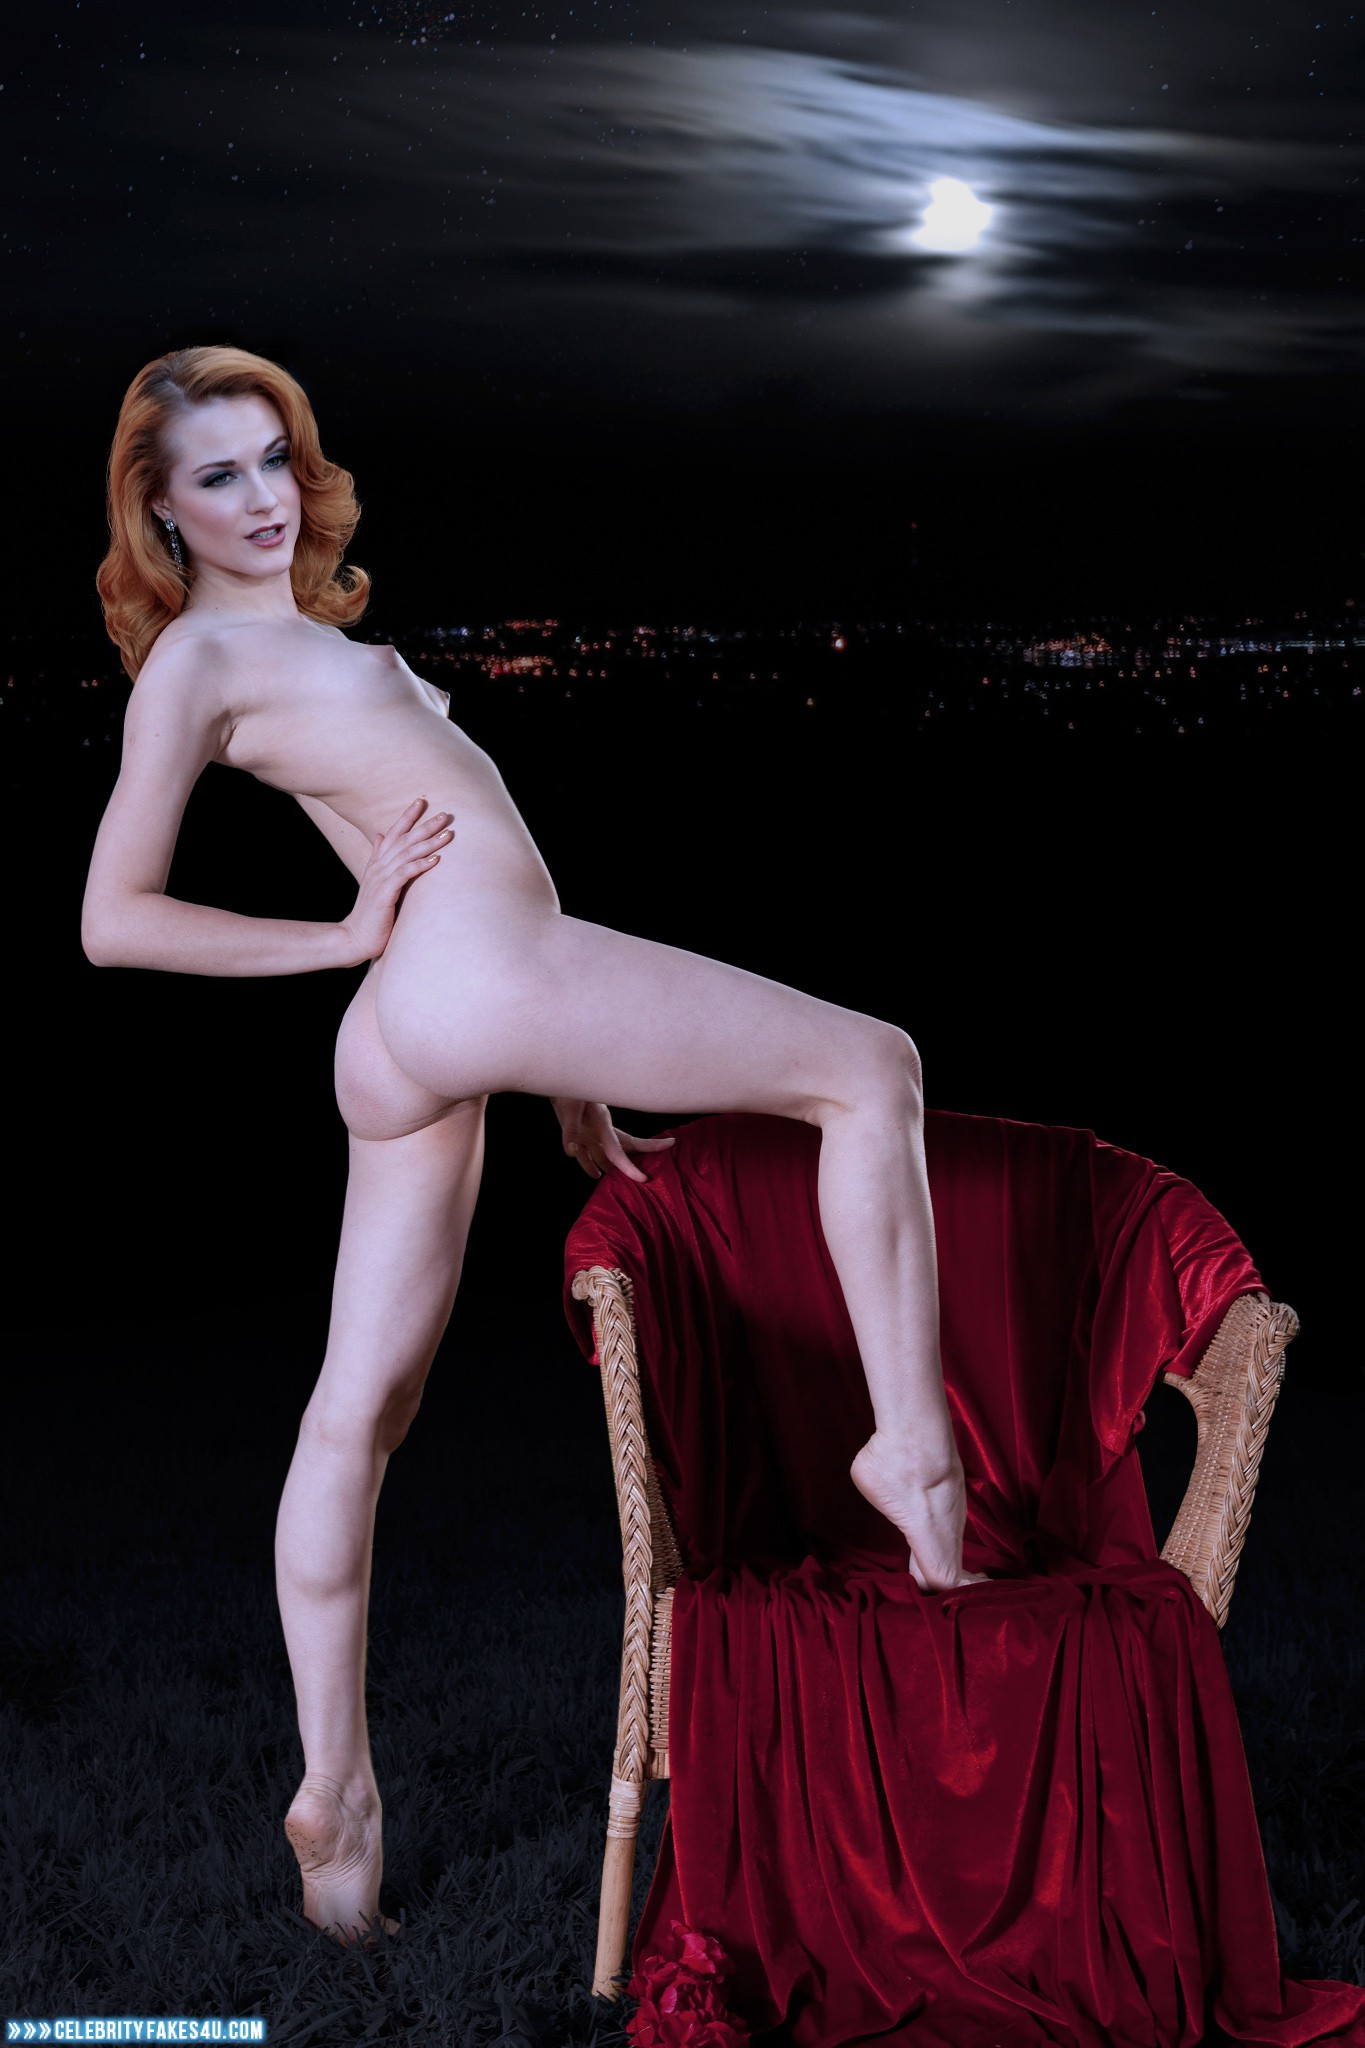 Naked nude girl with cut hair